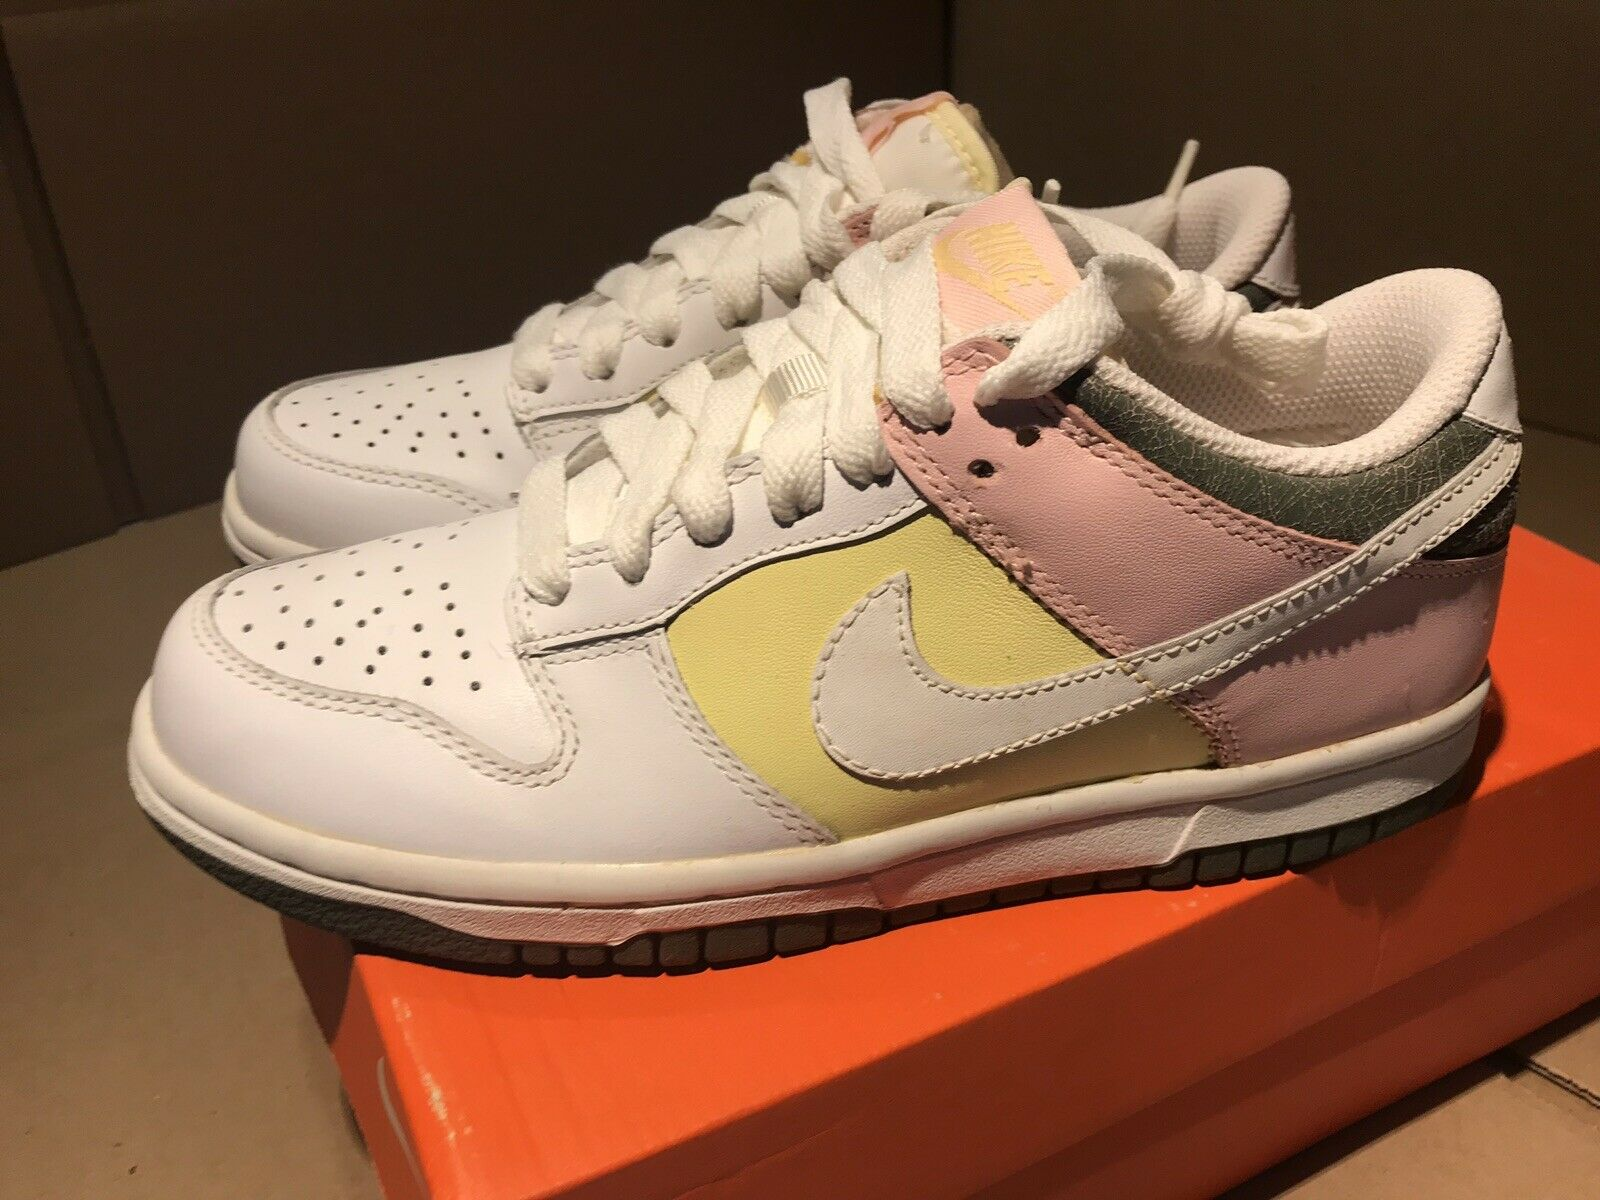 RARE 2007 NIKE EASTER Women 6 Leather Dunk Low Limited Edition White Pink Yellow